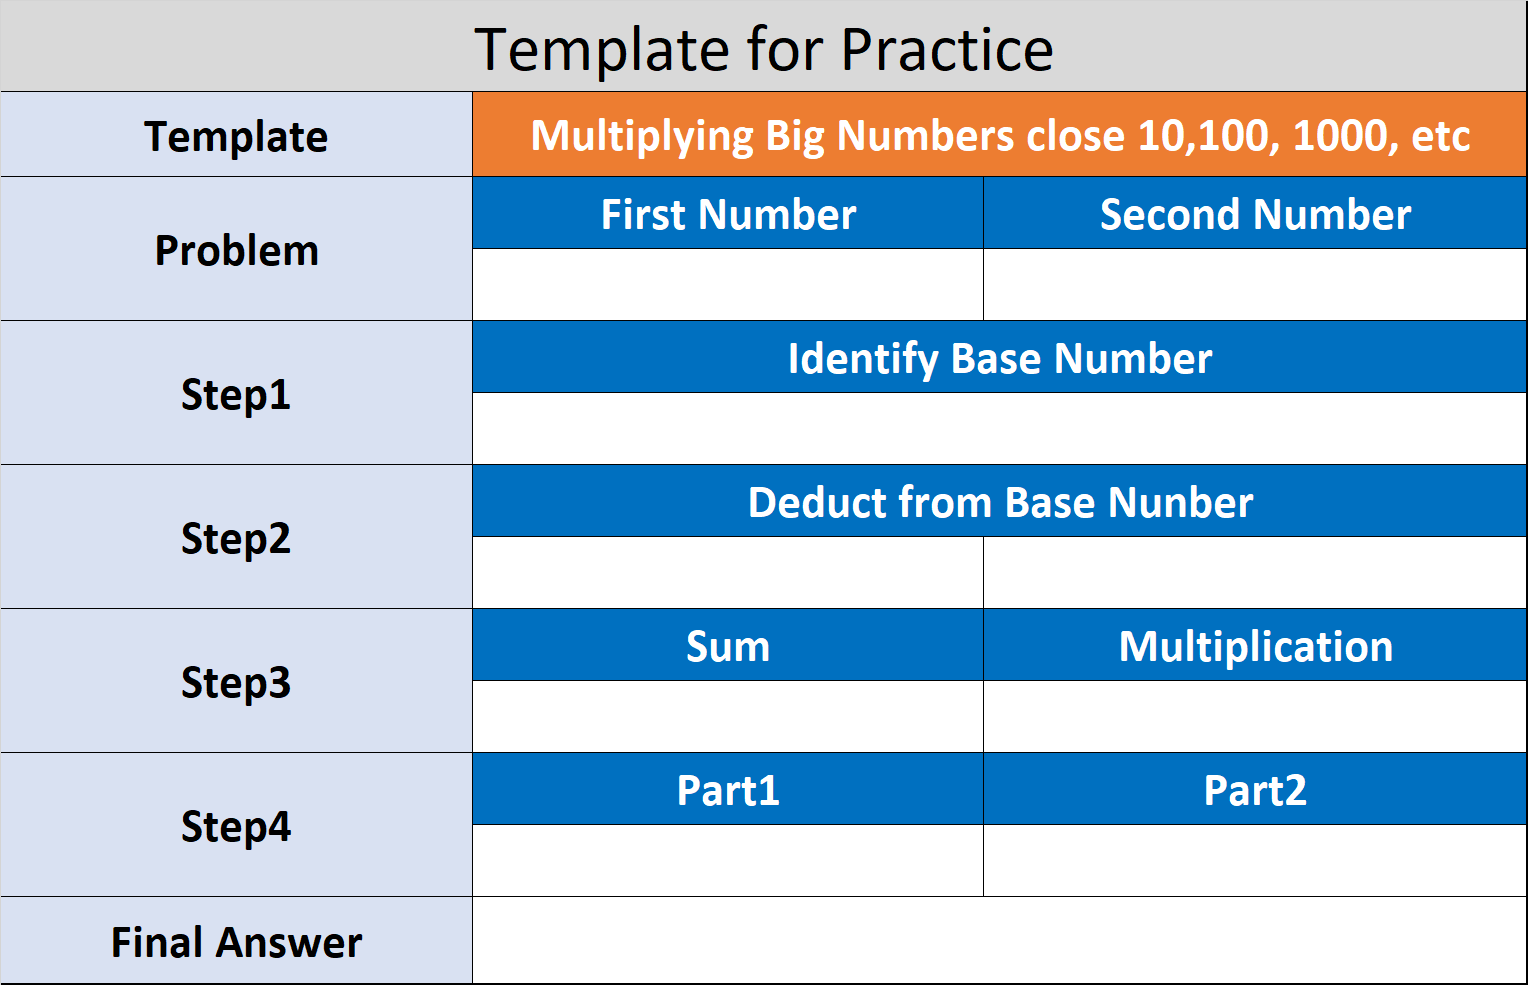 Practice Template How to Multiply Big Numbers Close to 10 100, 1000